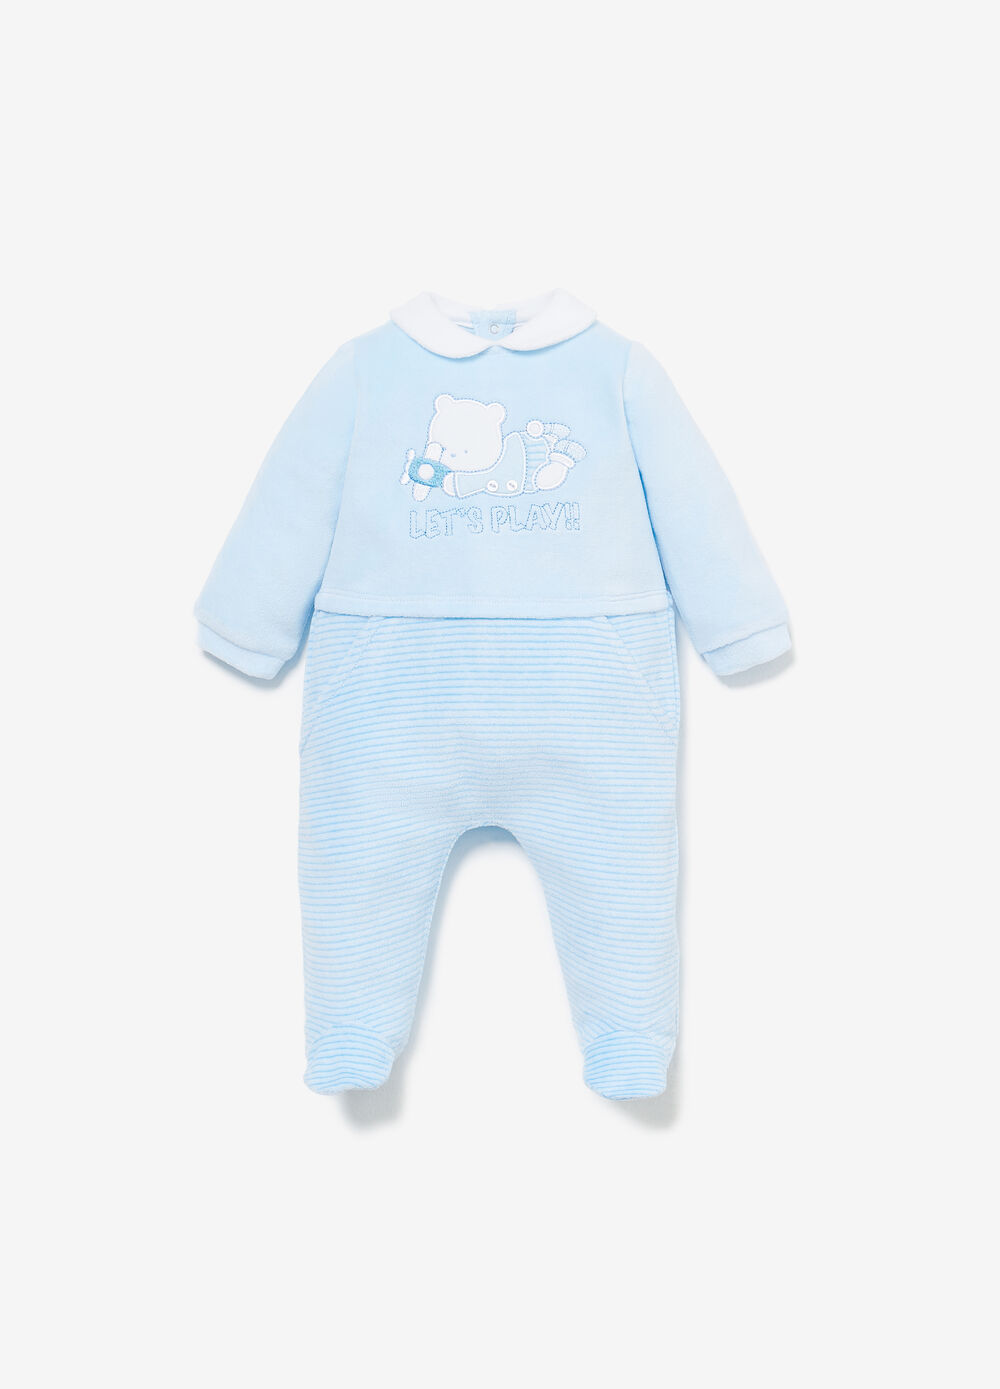 Embroidered Winnie the Pooh romper suit